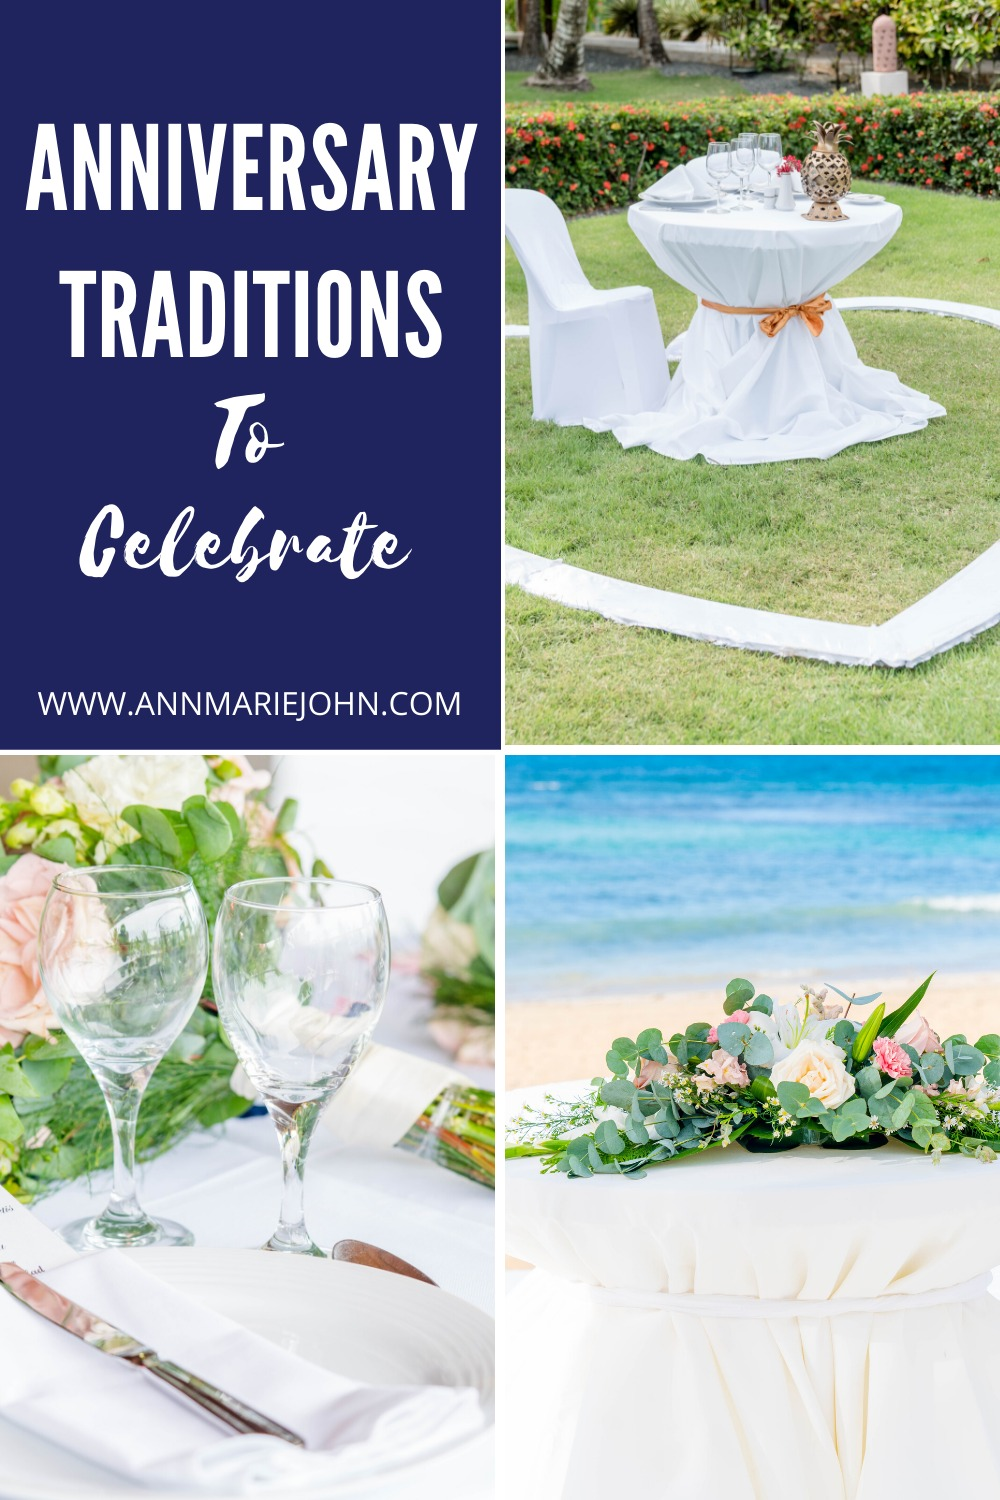 Anniversary Traditions Celebrations Pinterest Image